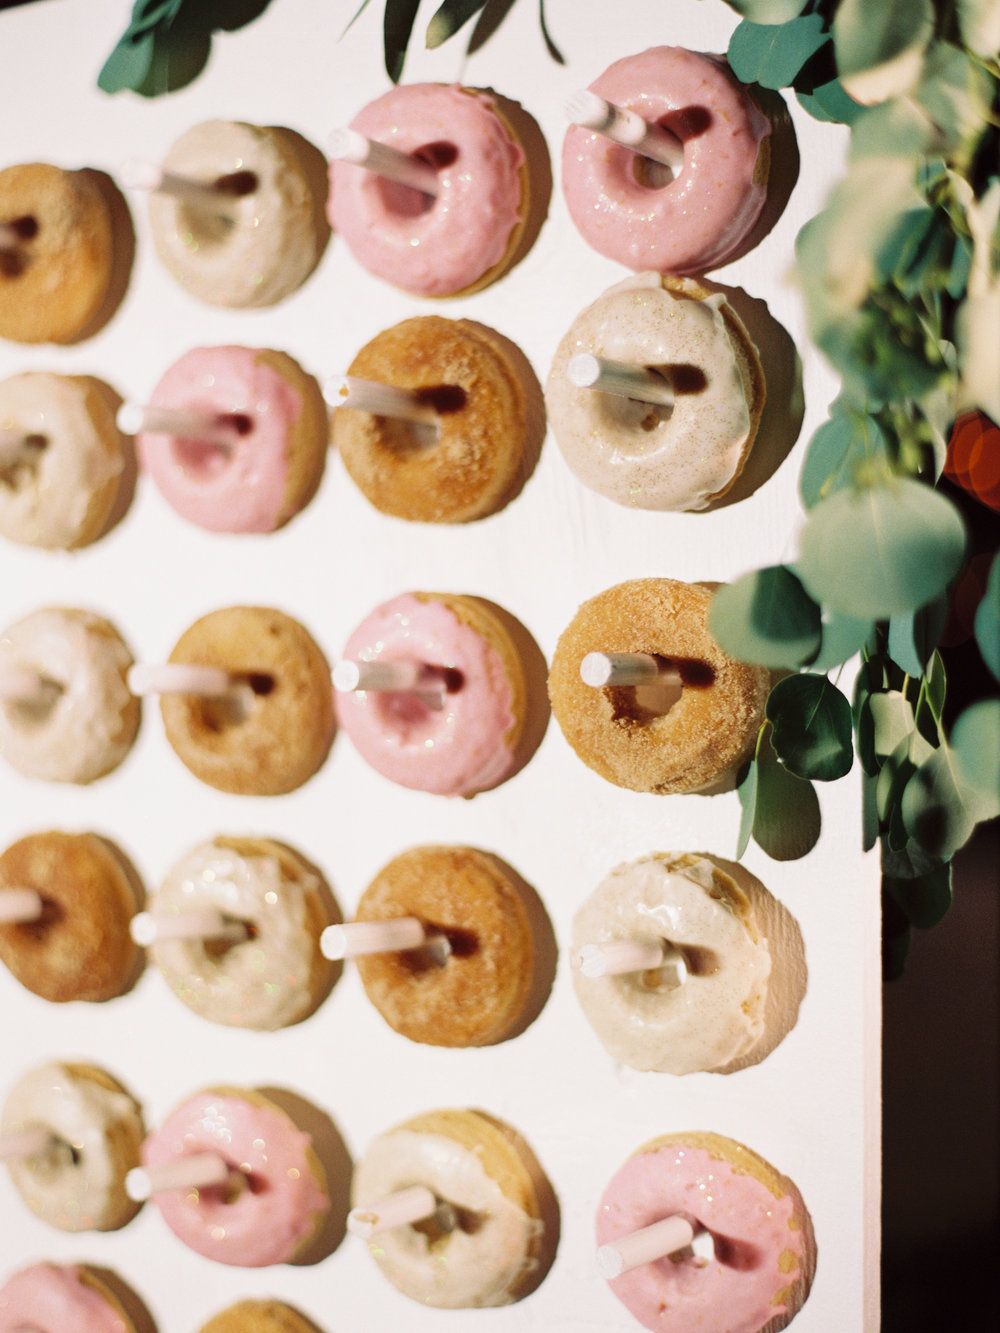 Vegan donuts from  Lux Central